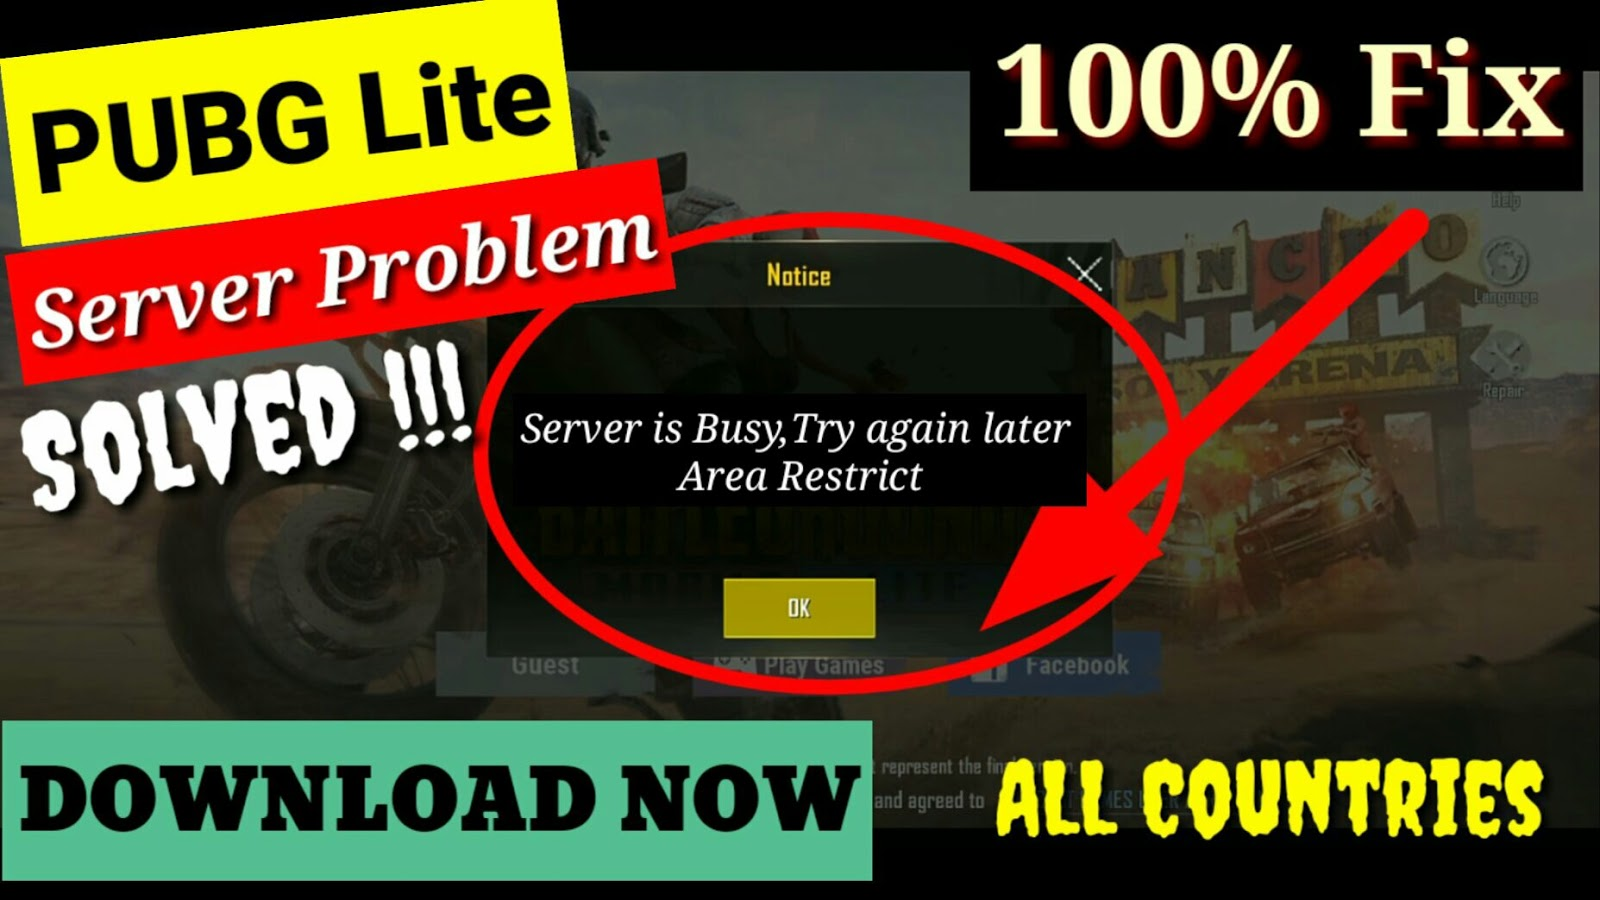 pubg lite servers are too busy please try again later